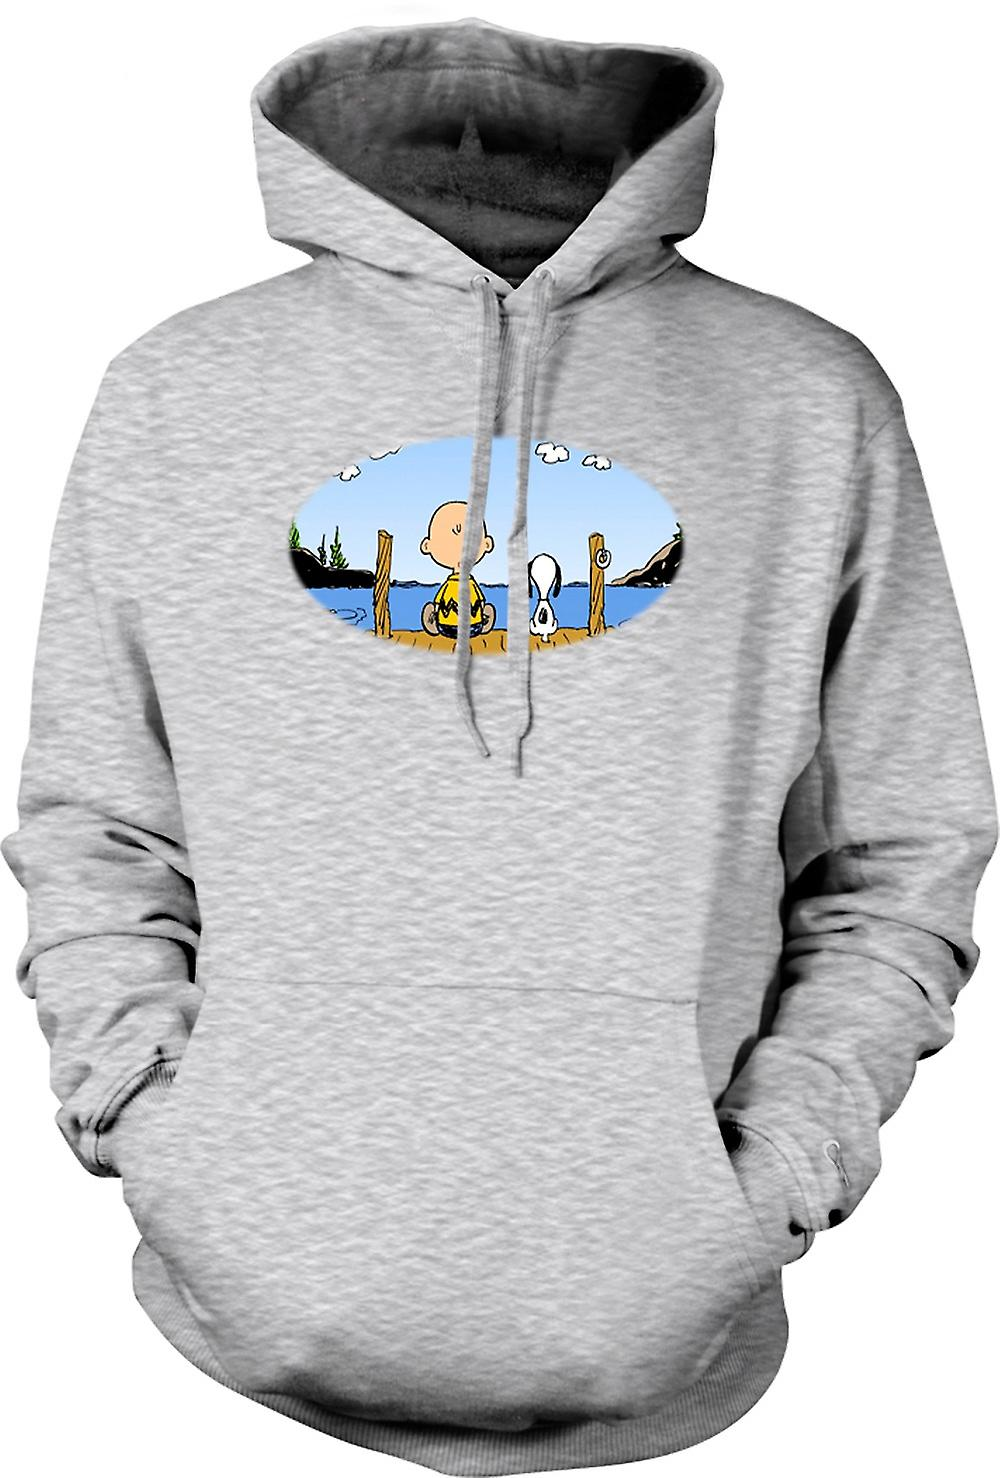 Mens Hoodie - Snoopy - Cartoon